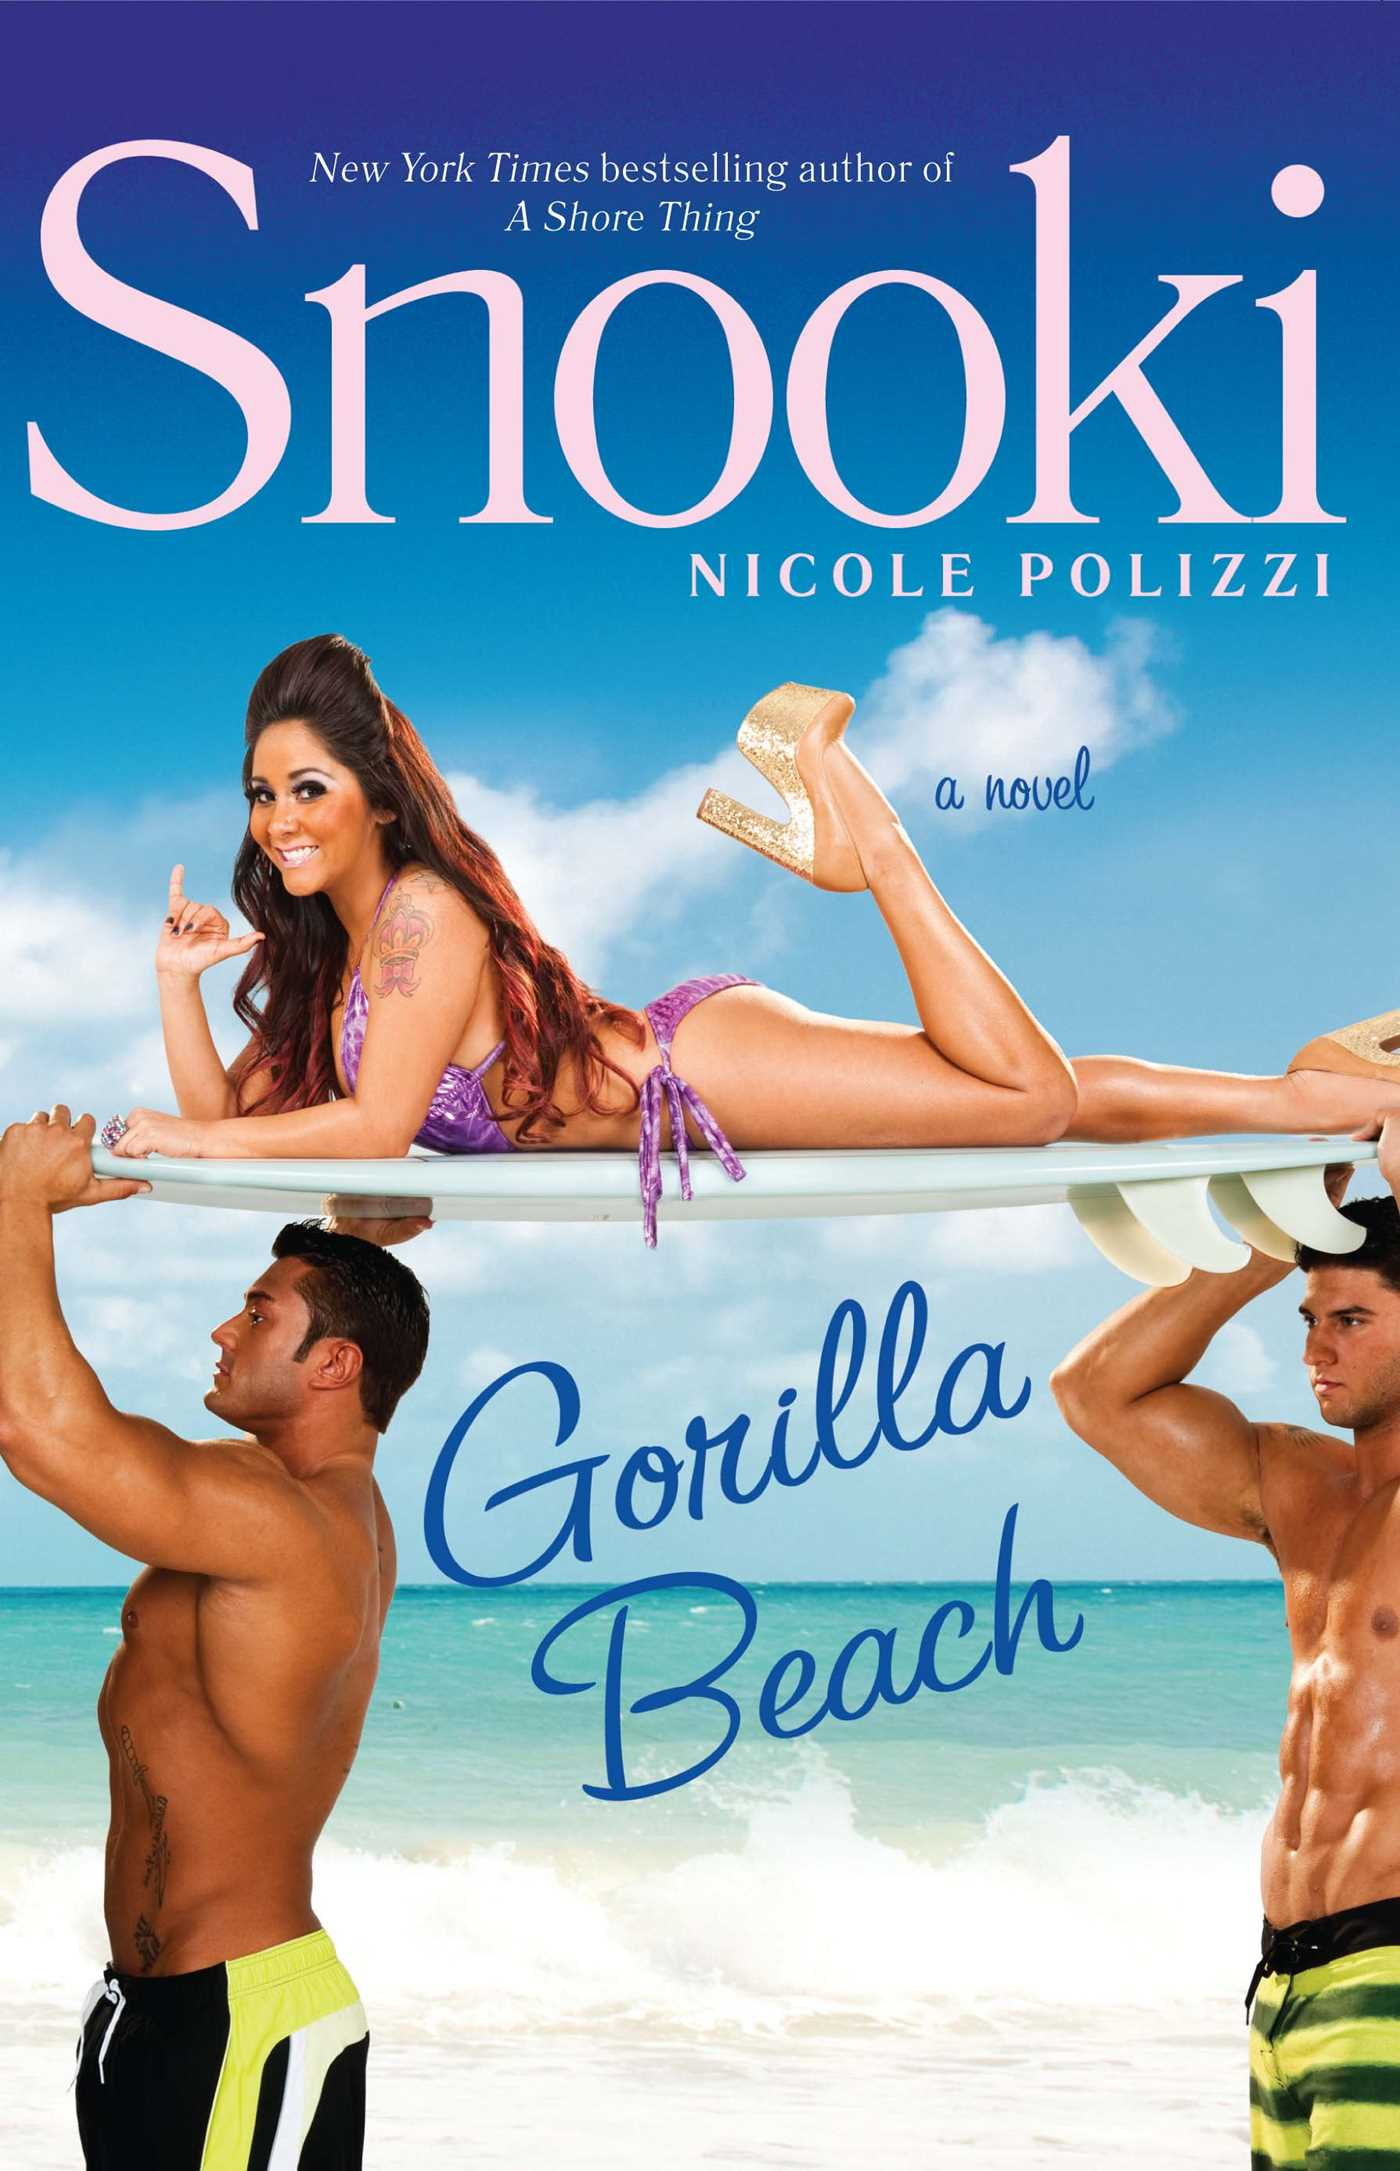 Gorilla beach 9781451657104 hr